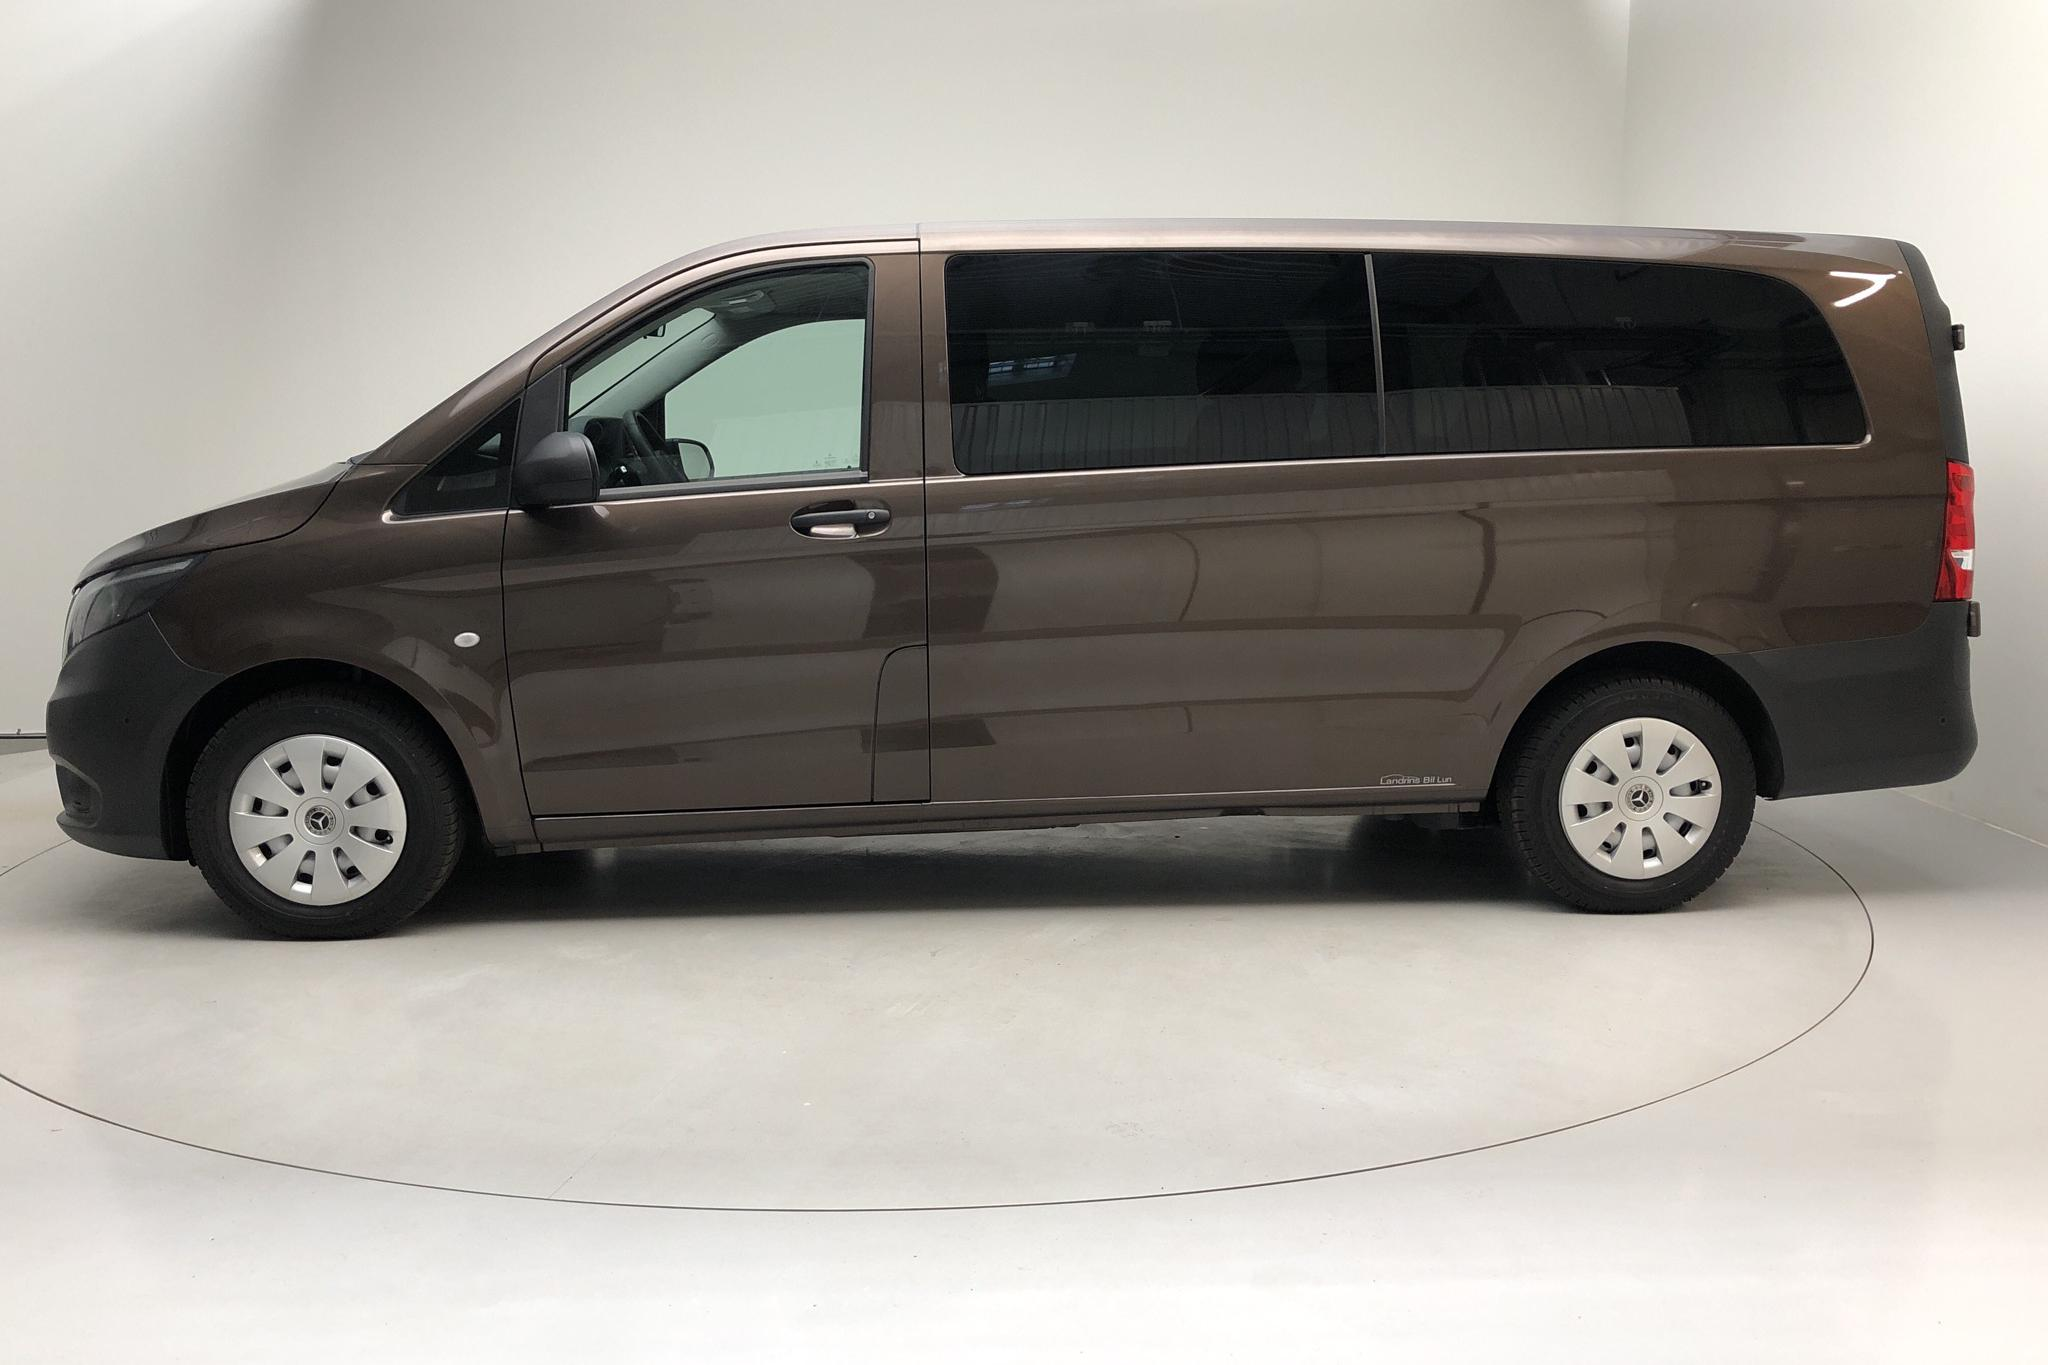 Mercedes Vito Tourer 116 CDI W640 (163hk) - 25 560 km - Automatic - Dark Brown - 2019